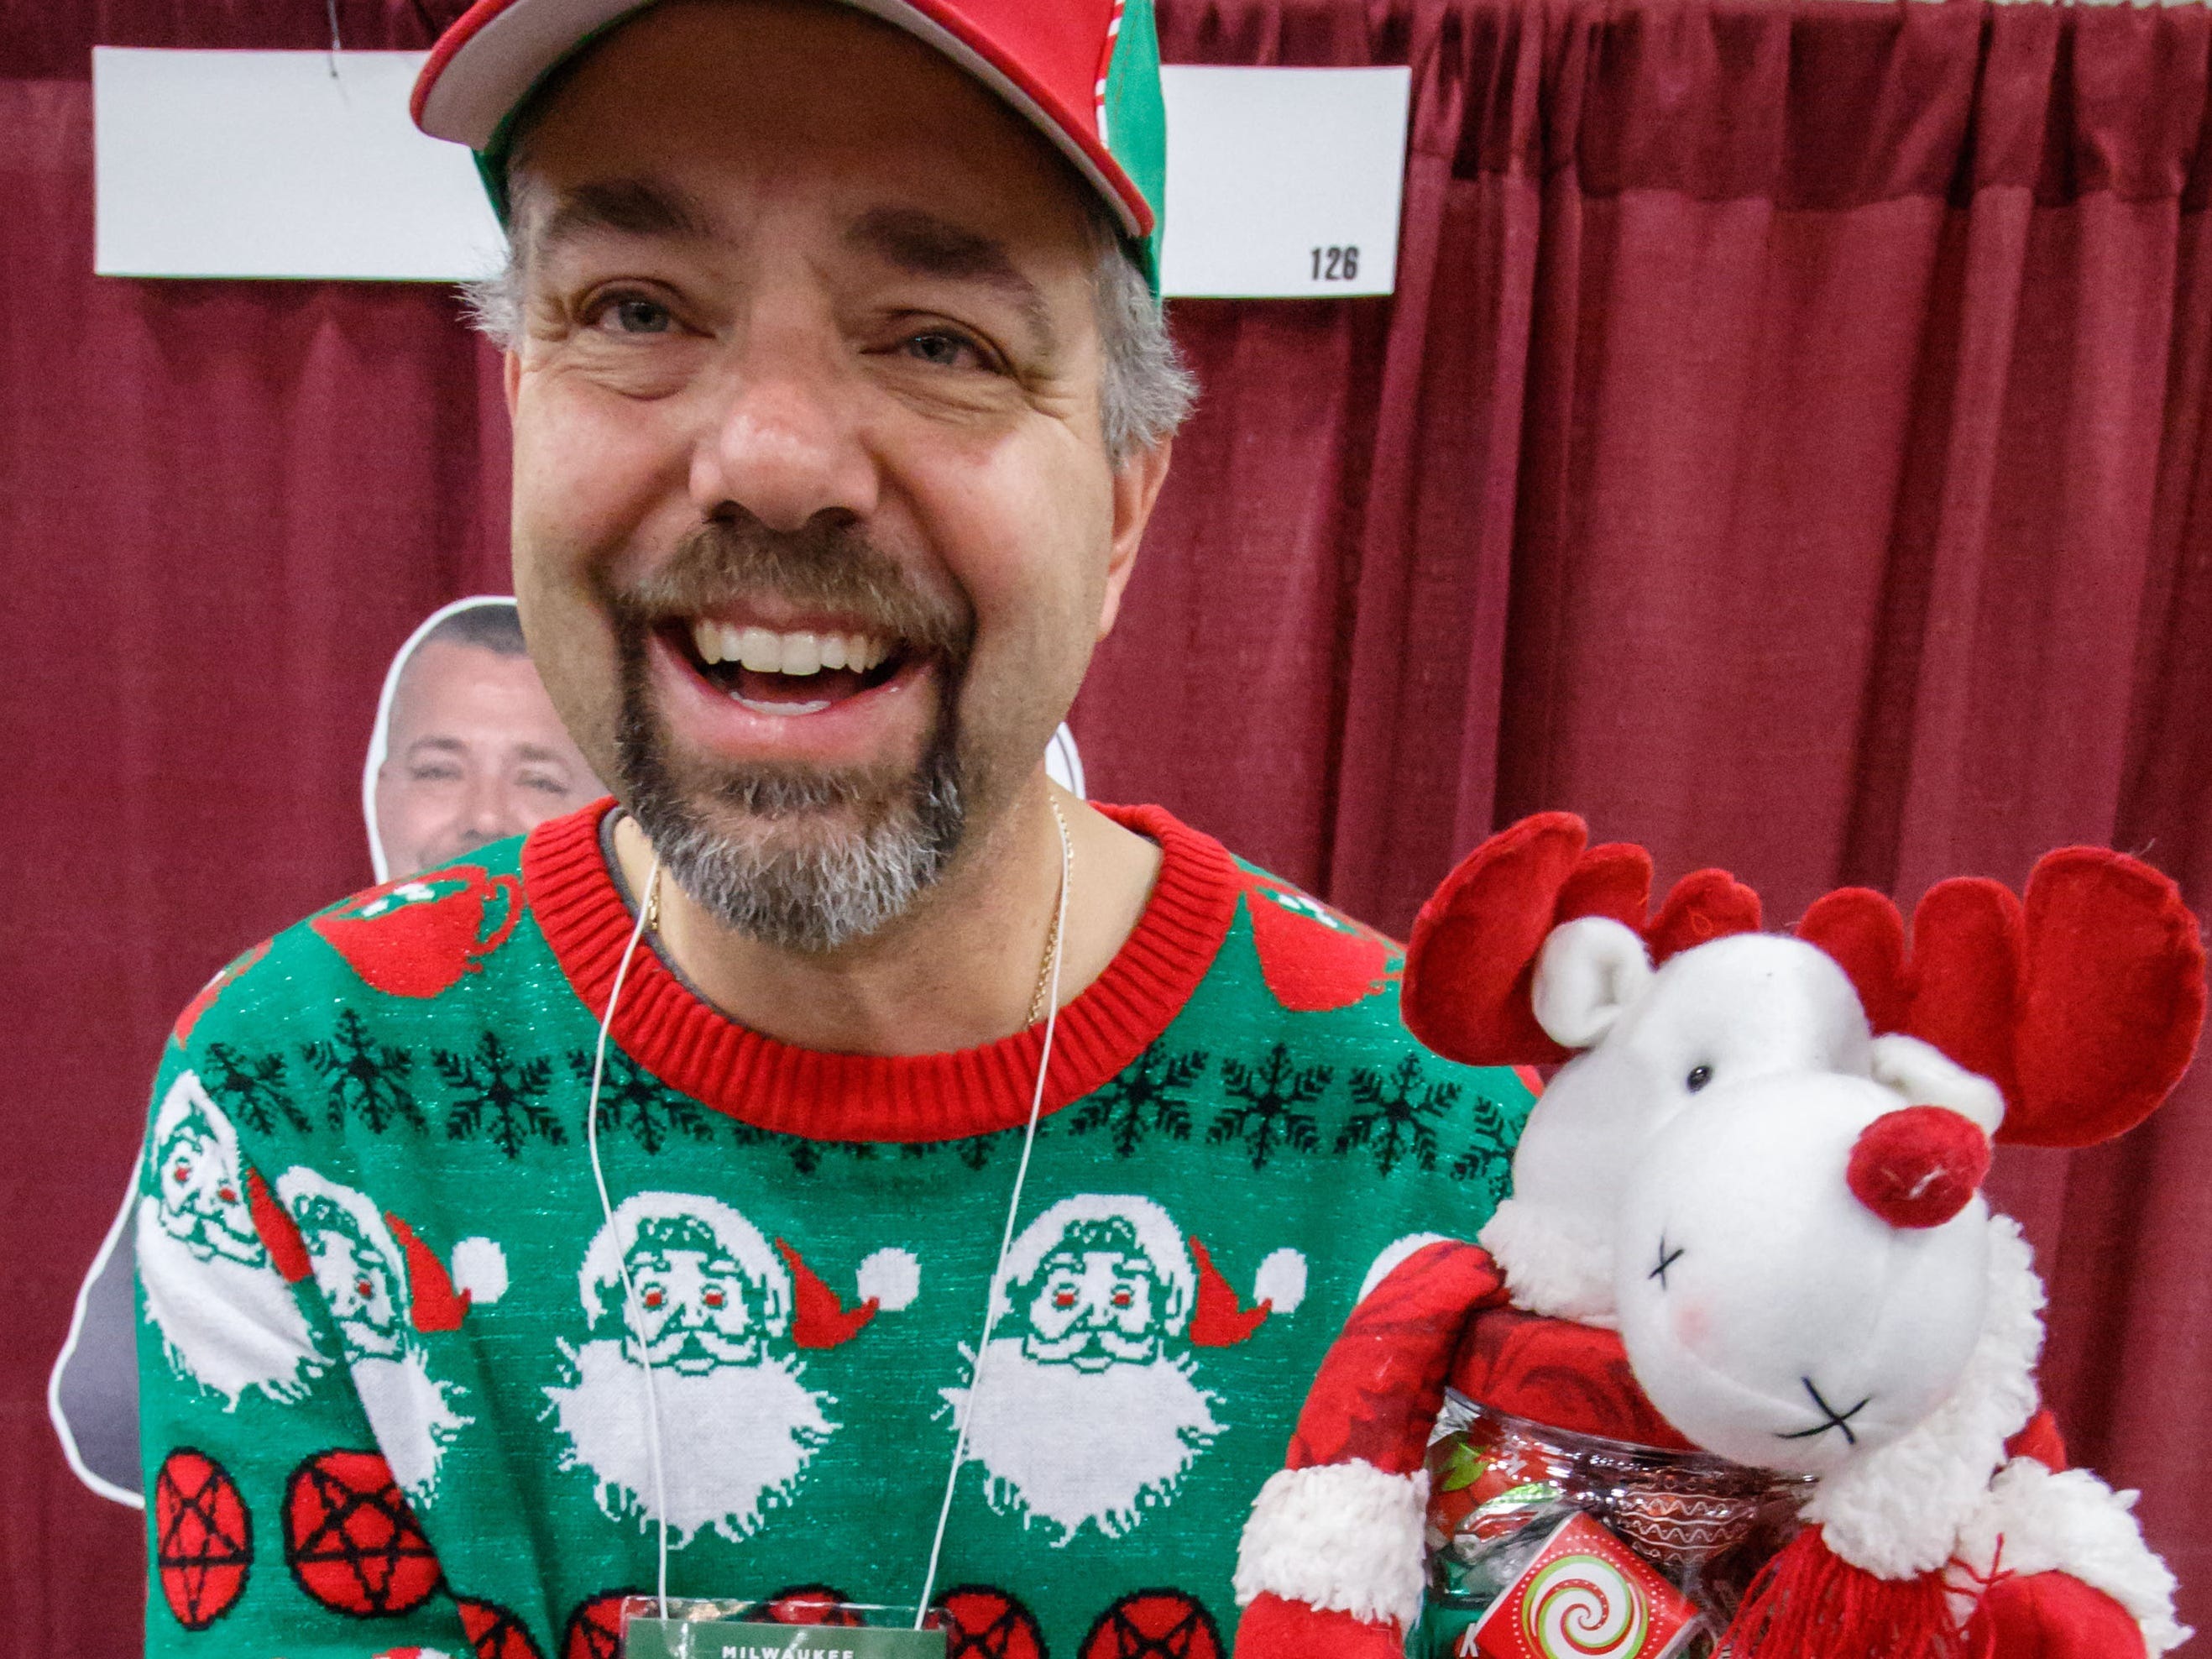 Scott Rondeau of Sweet to Eat gifts in Wauwatosa tempts shoppers with holiday themed candy gifts during the Milwaukee Holiday Boutique at Wisconsin State Fair Park on Friday, Nov. 2, 2018. The event features over 200 vendors, pictures with Santa, live entertainment and much more.